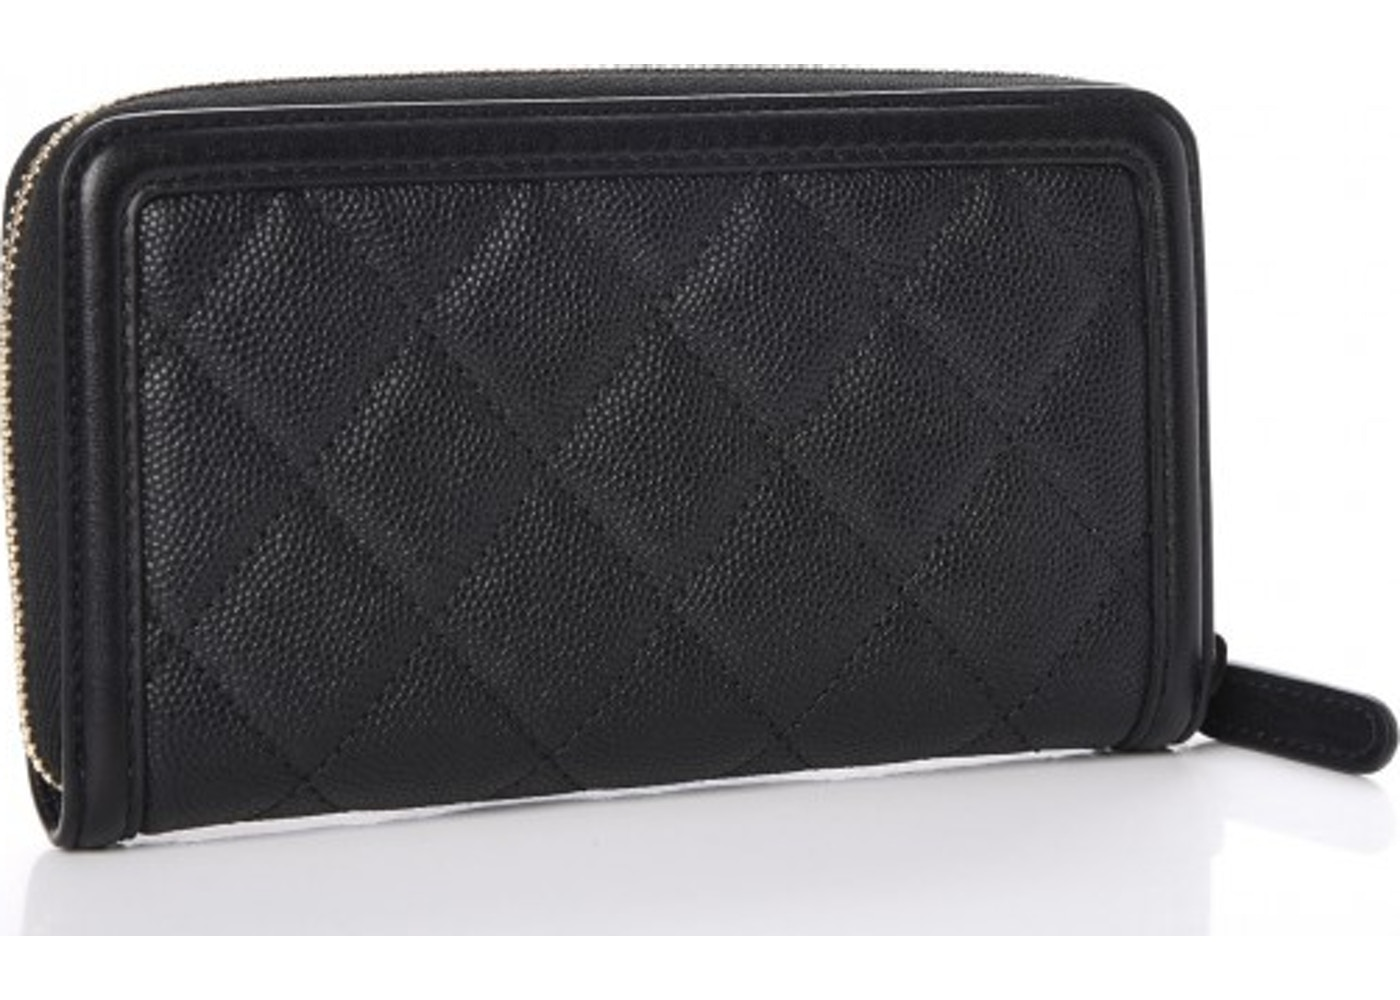 9c9350e2de0d09 Chanel Filigree Zip Around Wallet Quilted Caviar Gold-tone Small Black